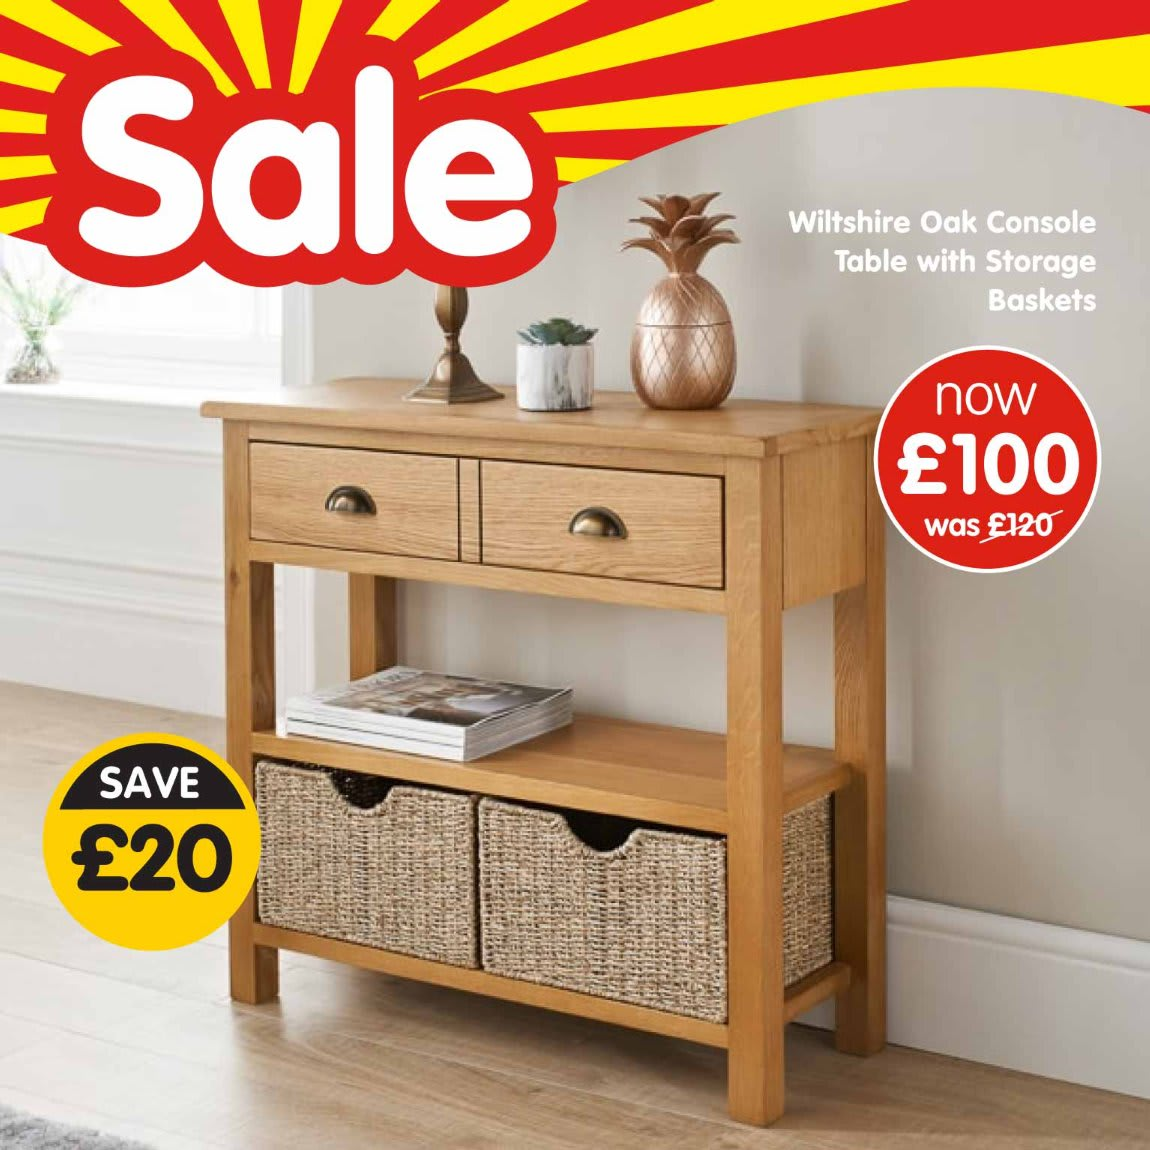 Save in January Furniture Sale at B&M.